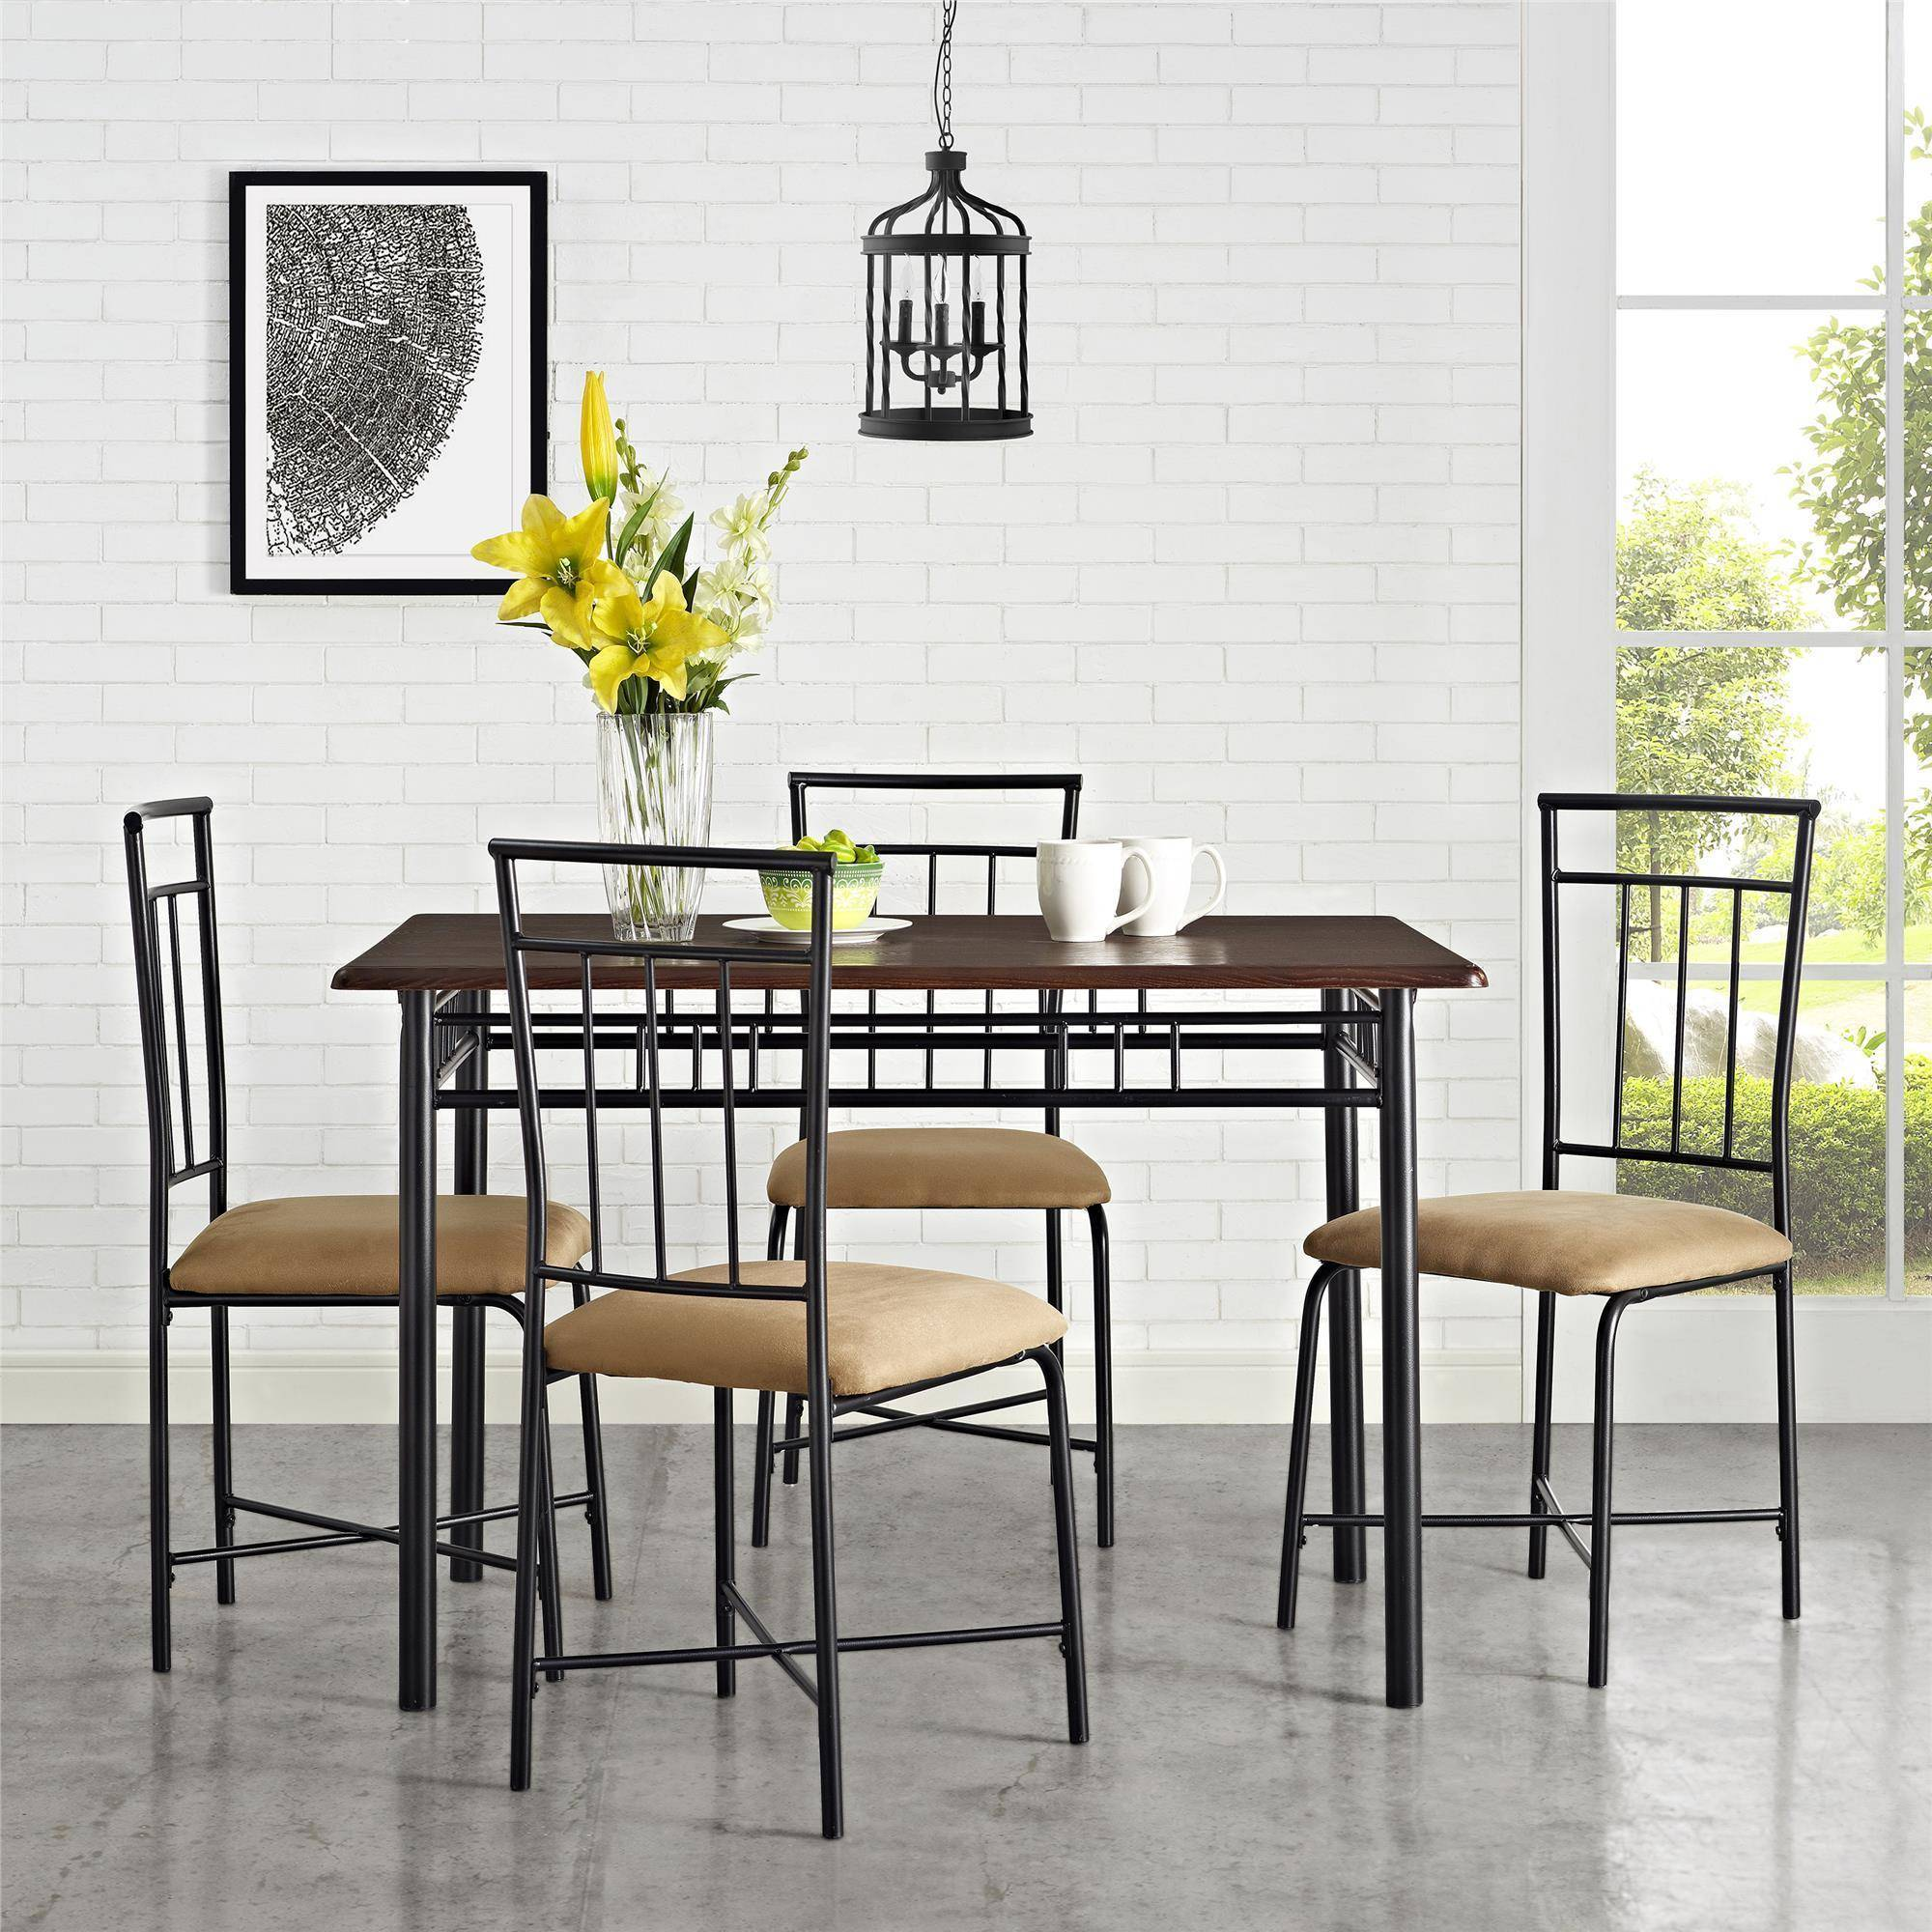 Mainstays 5 Piece Dining Set, Multiple Colors - Walmart.com